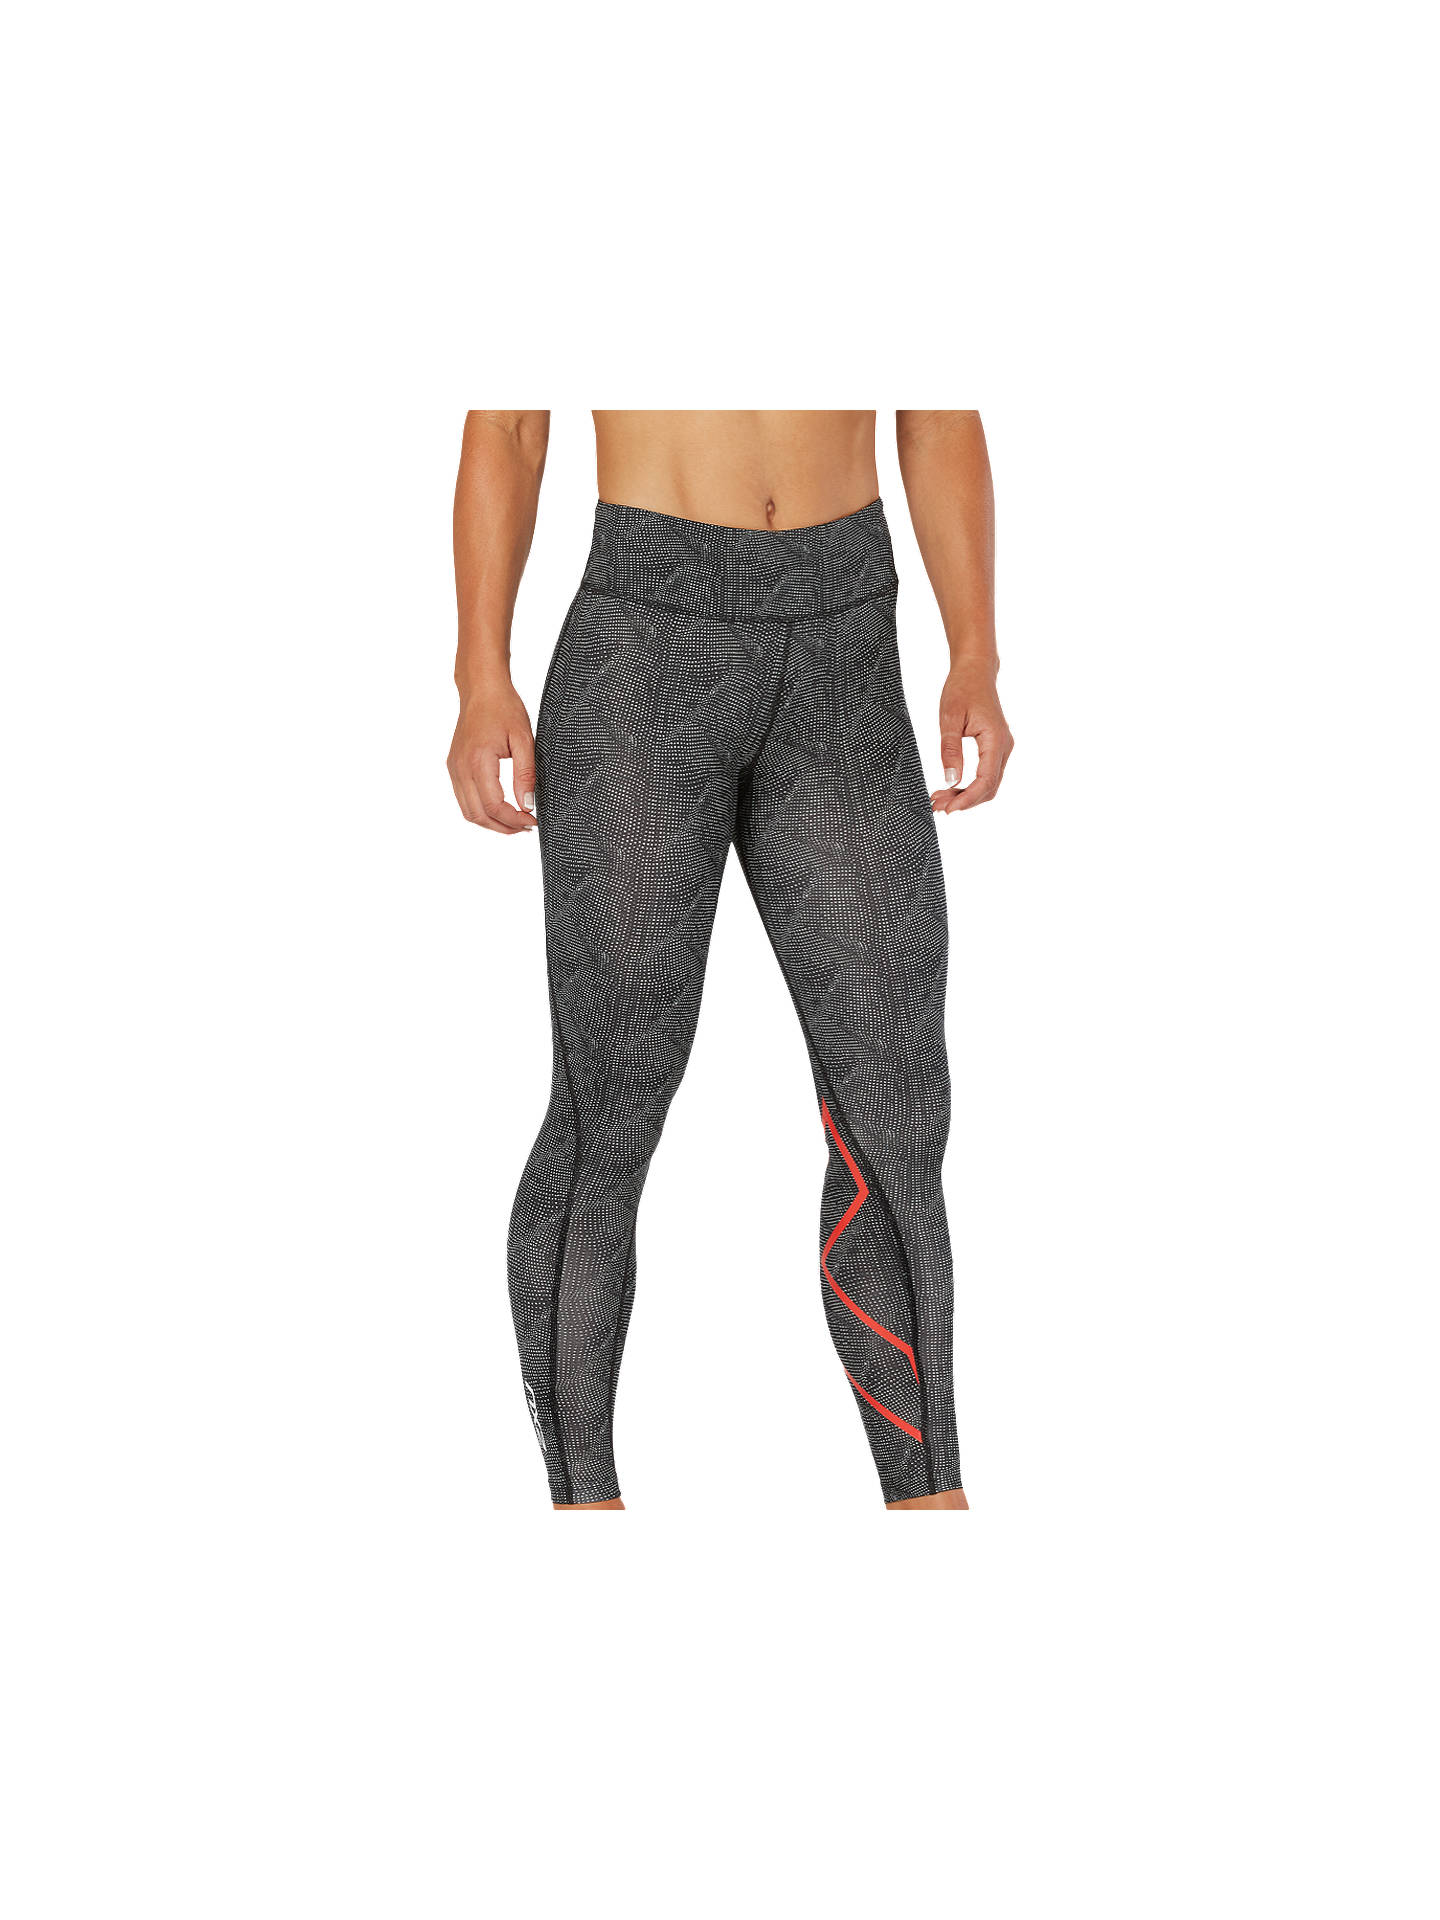 84c7f5bc ... Buy 2XU Mid-Rise Print Compression Women's Tights, Grey, XS Online at  johnlewis ...